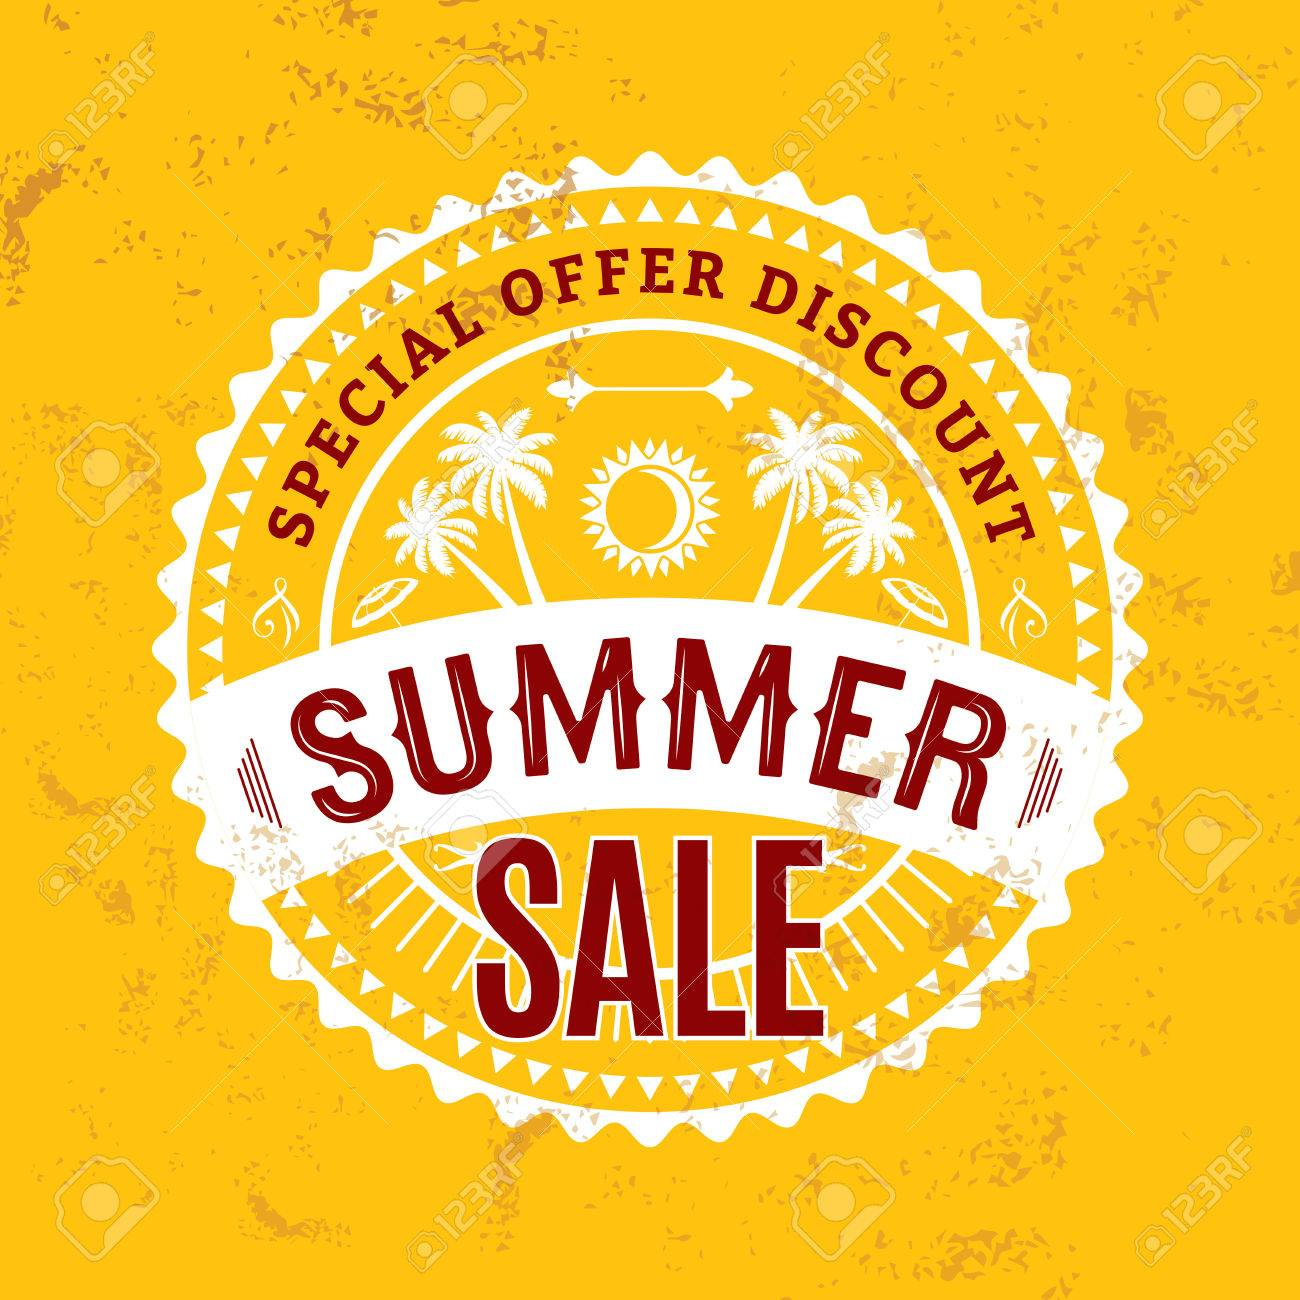 summer sale banner design template for promotion royalty free